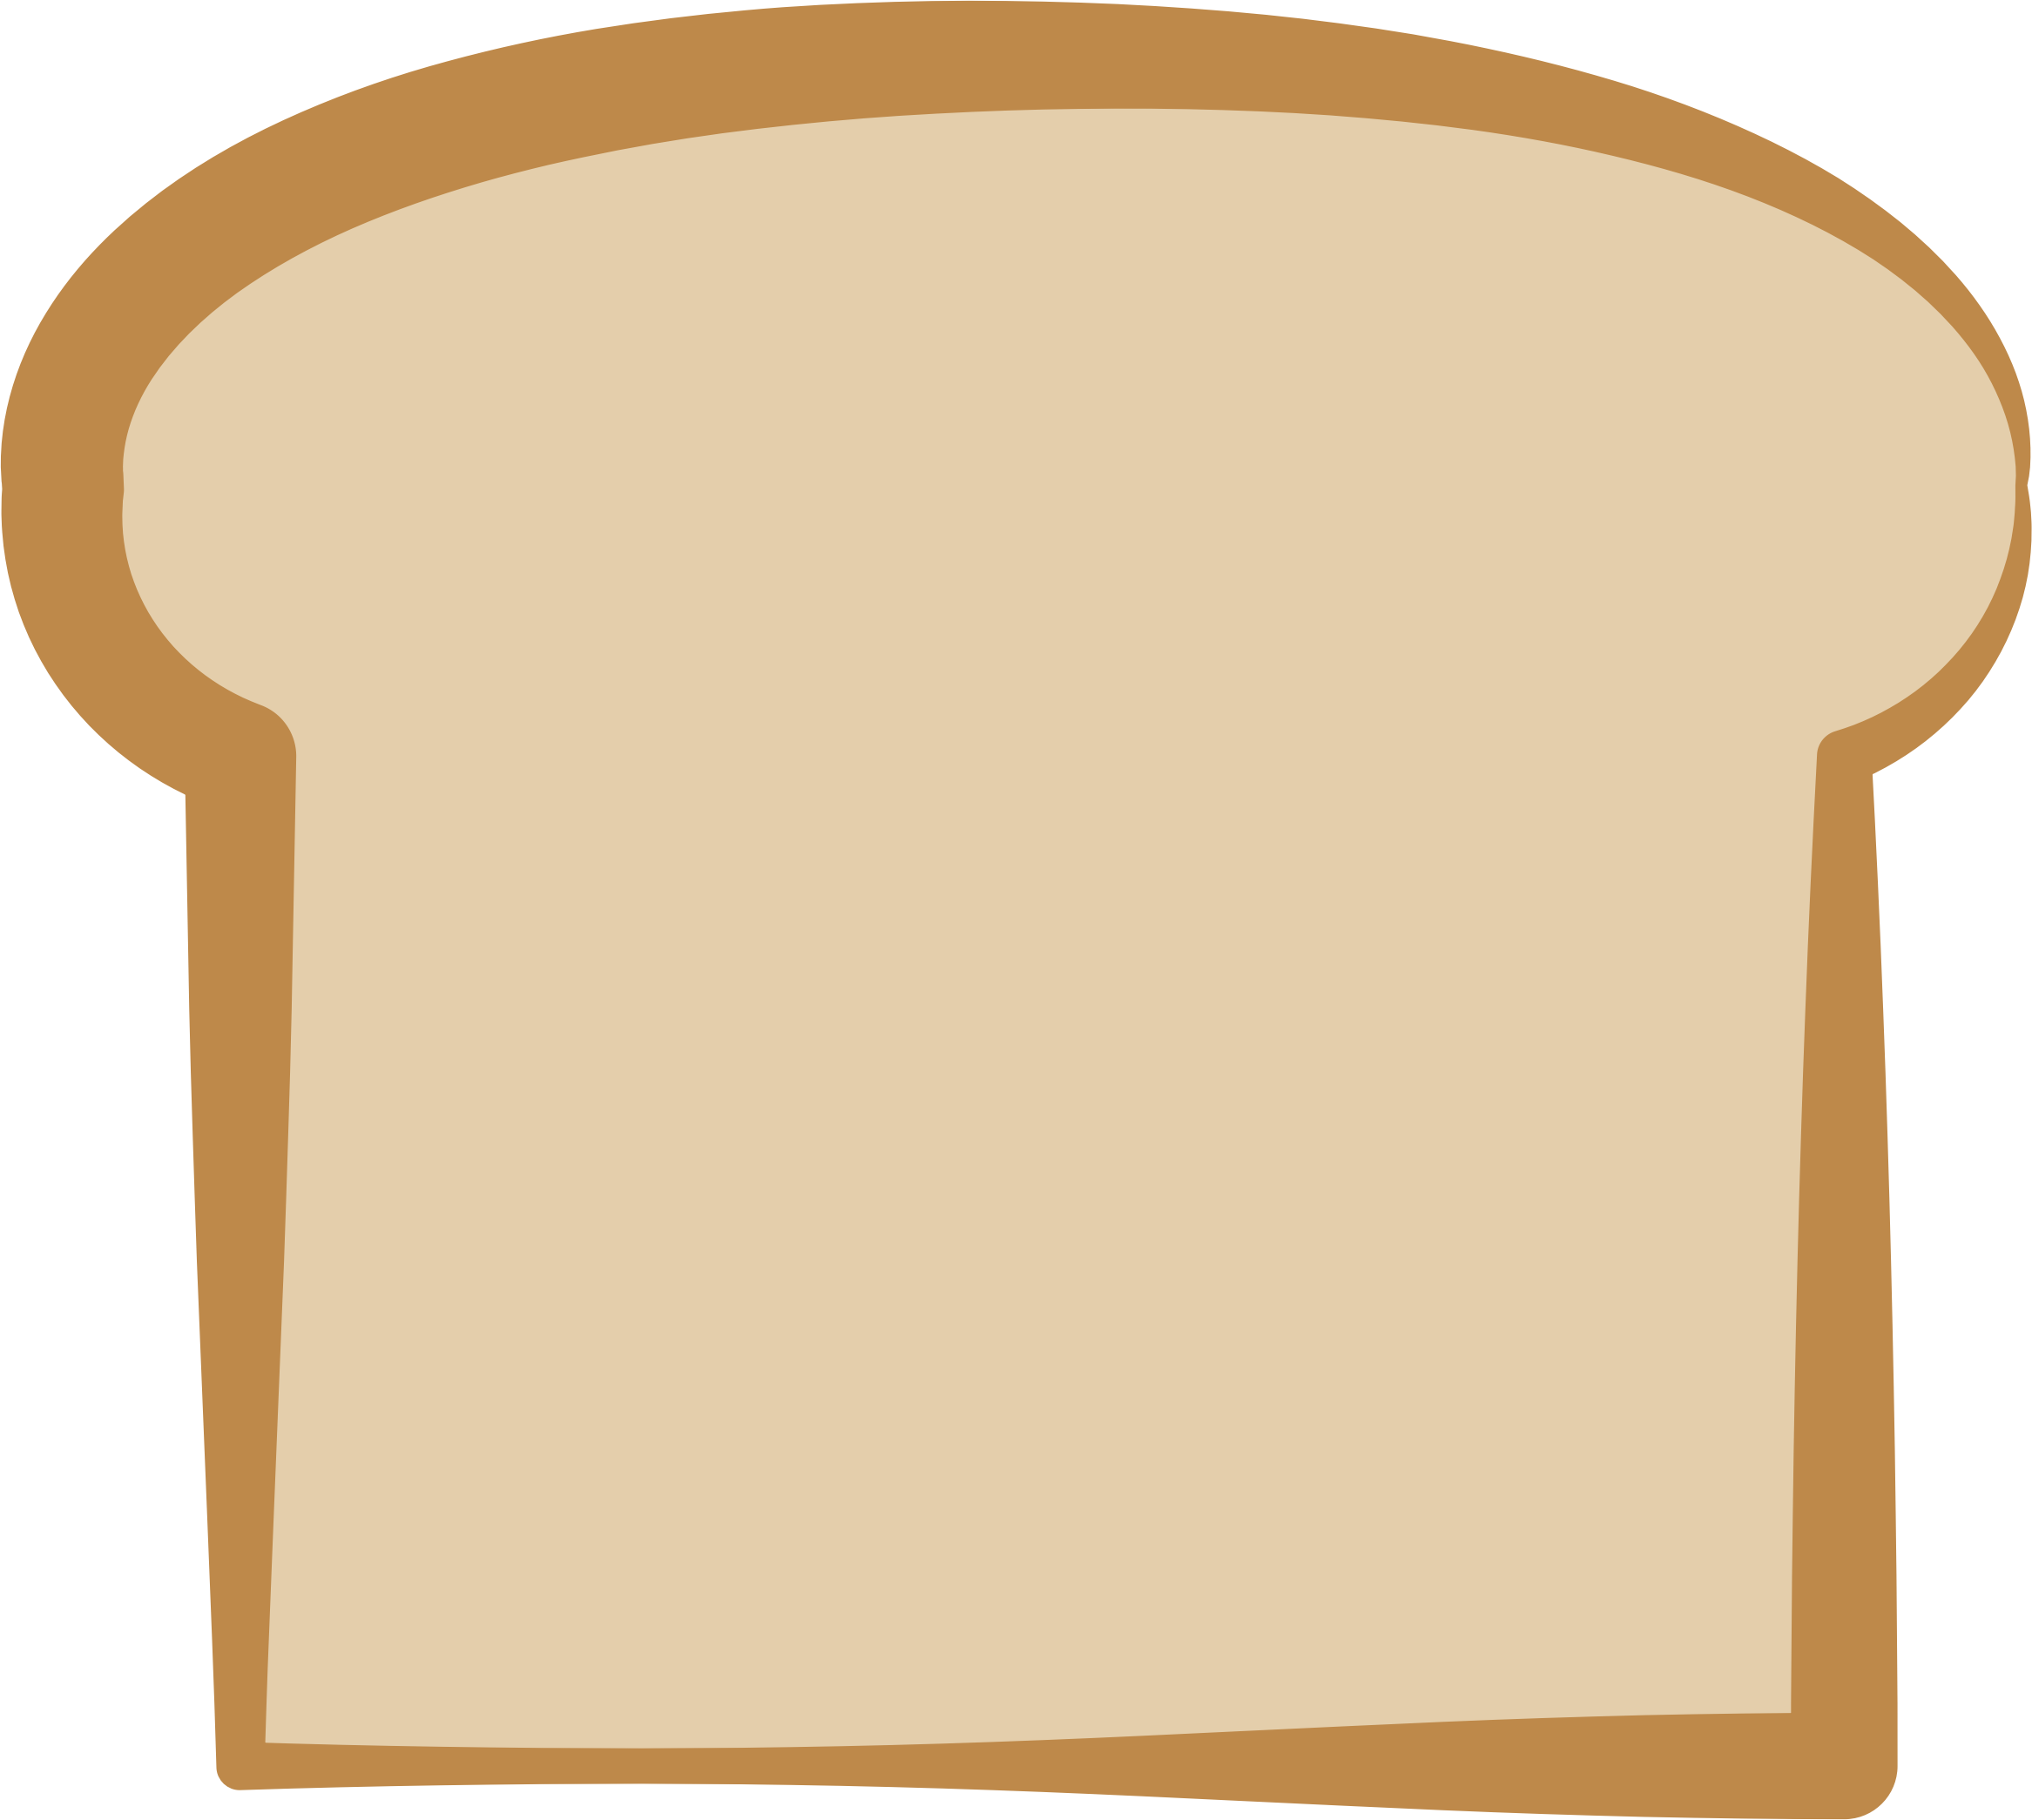 Bread big image png. Square clipart toast